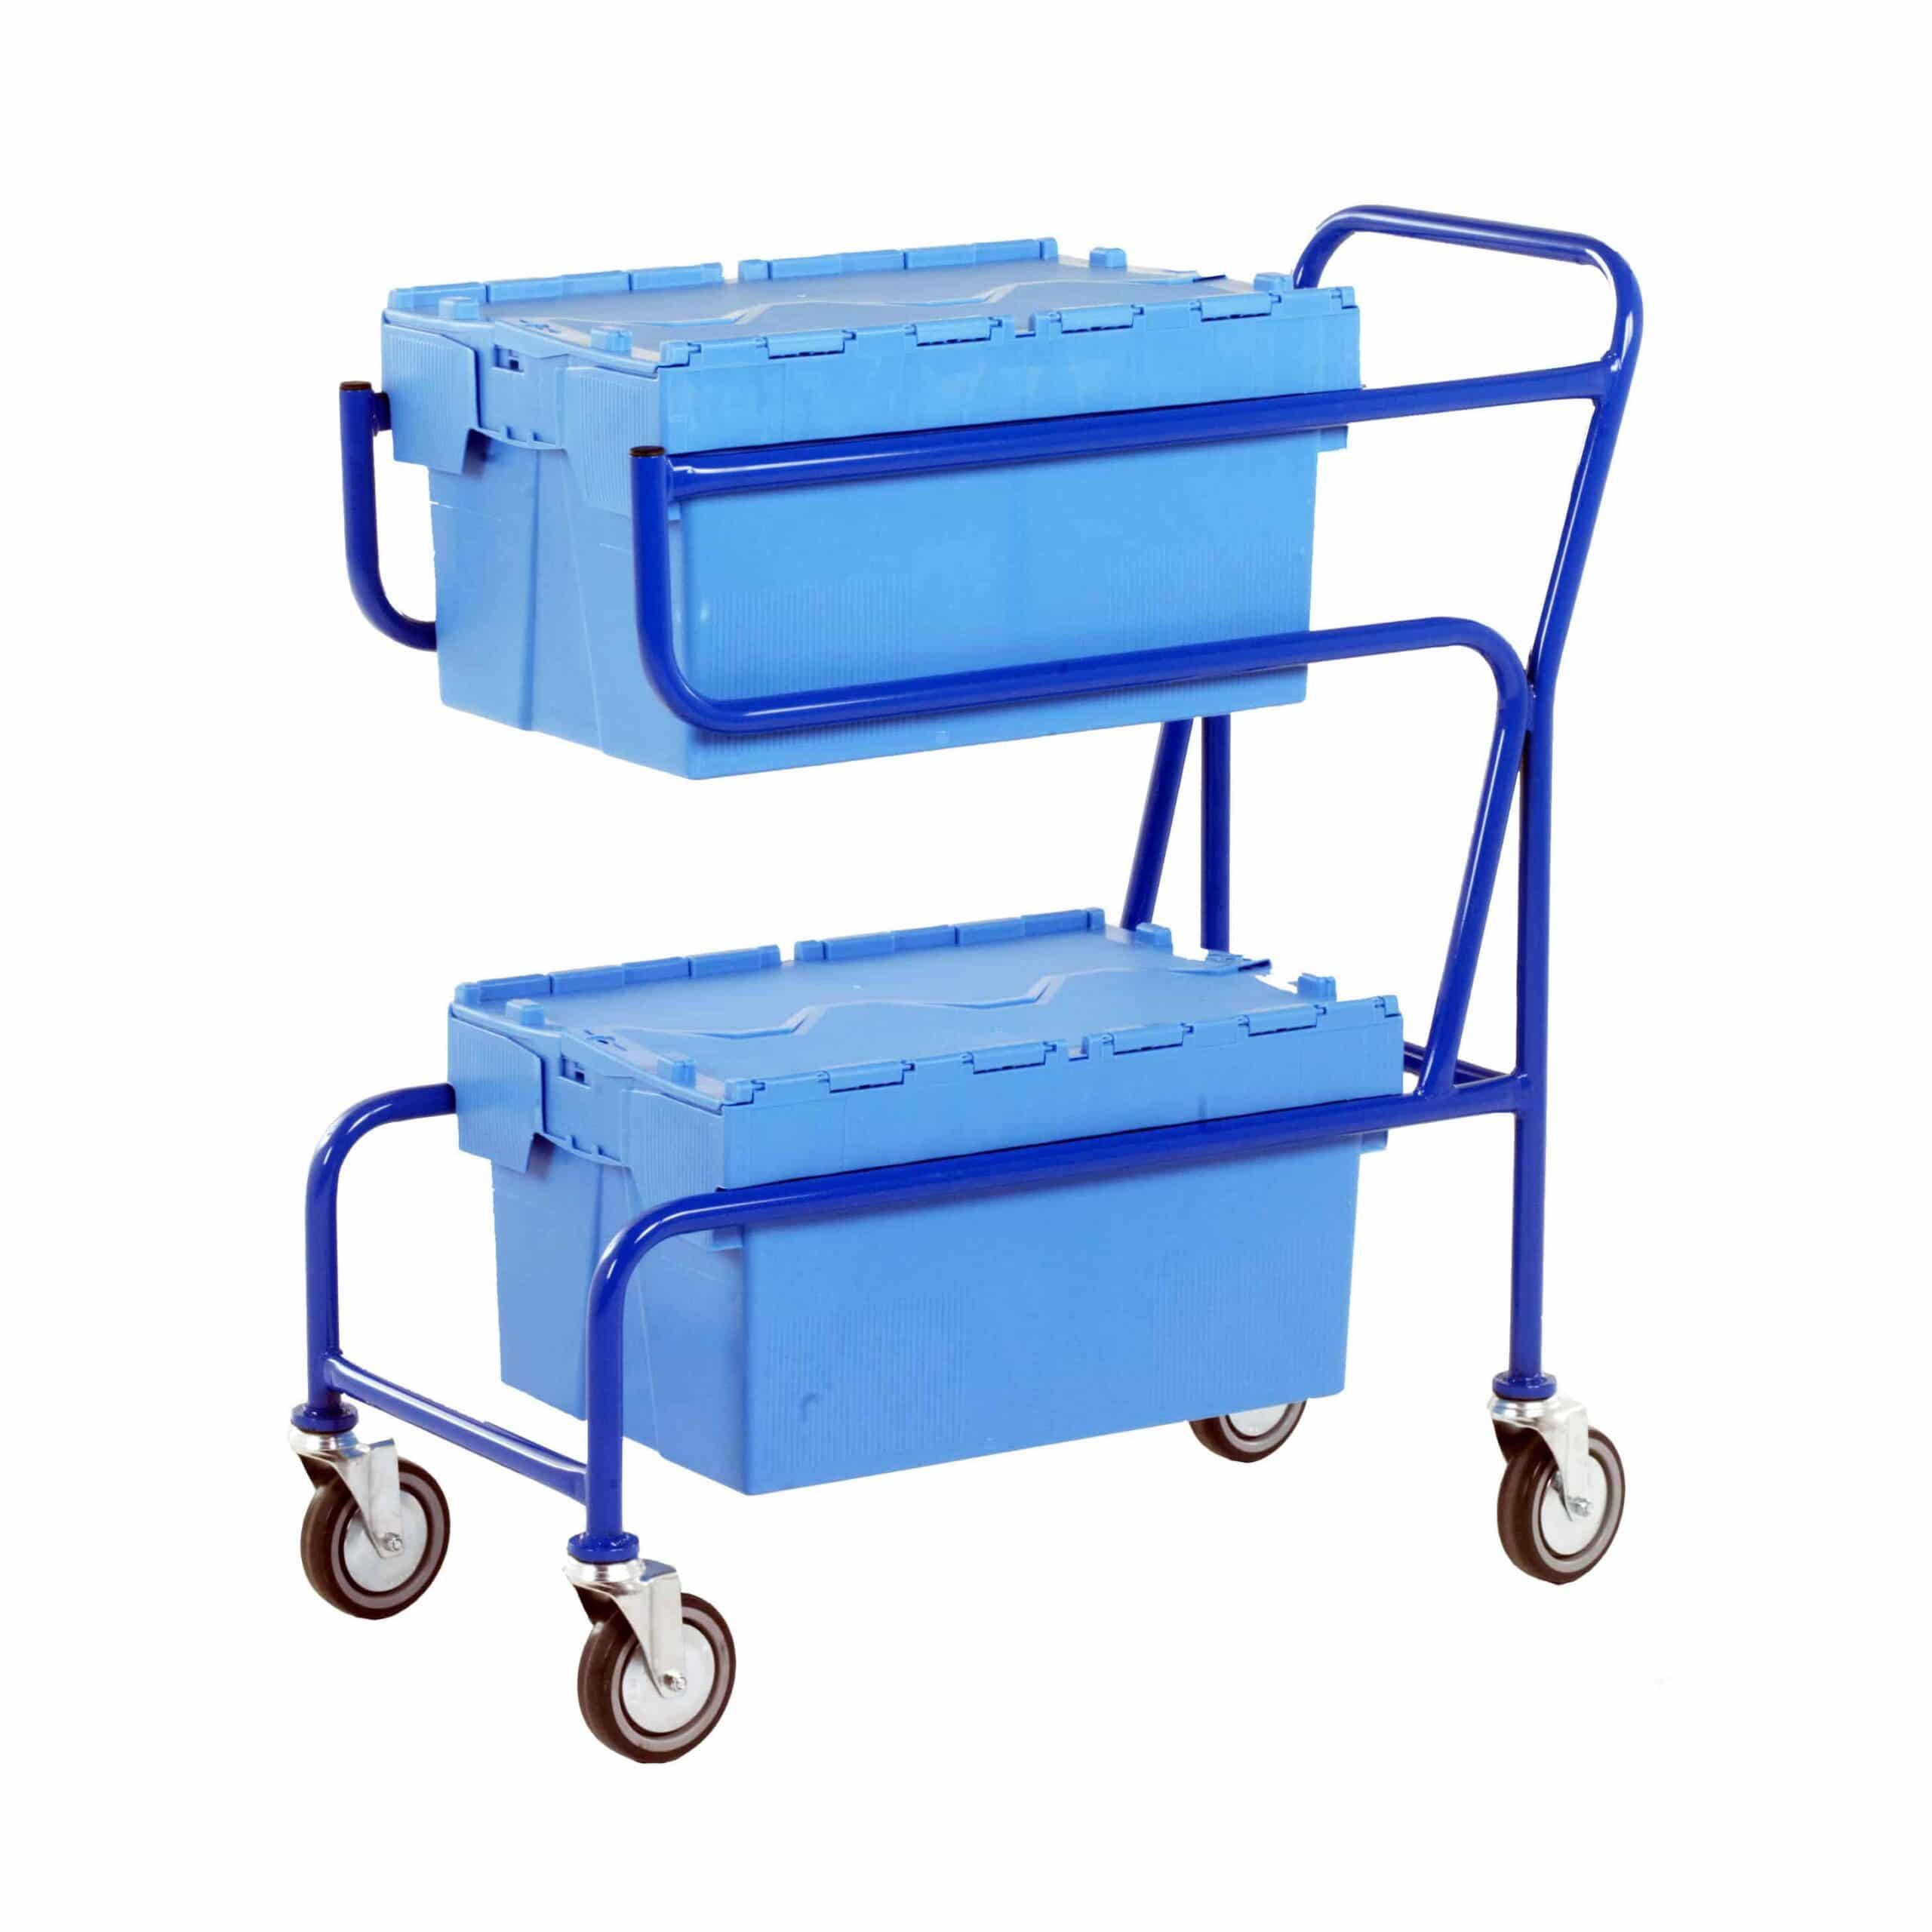 Order Picking Multi-Trip Container Trolley